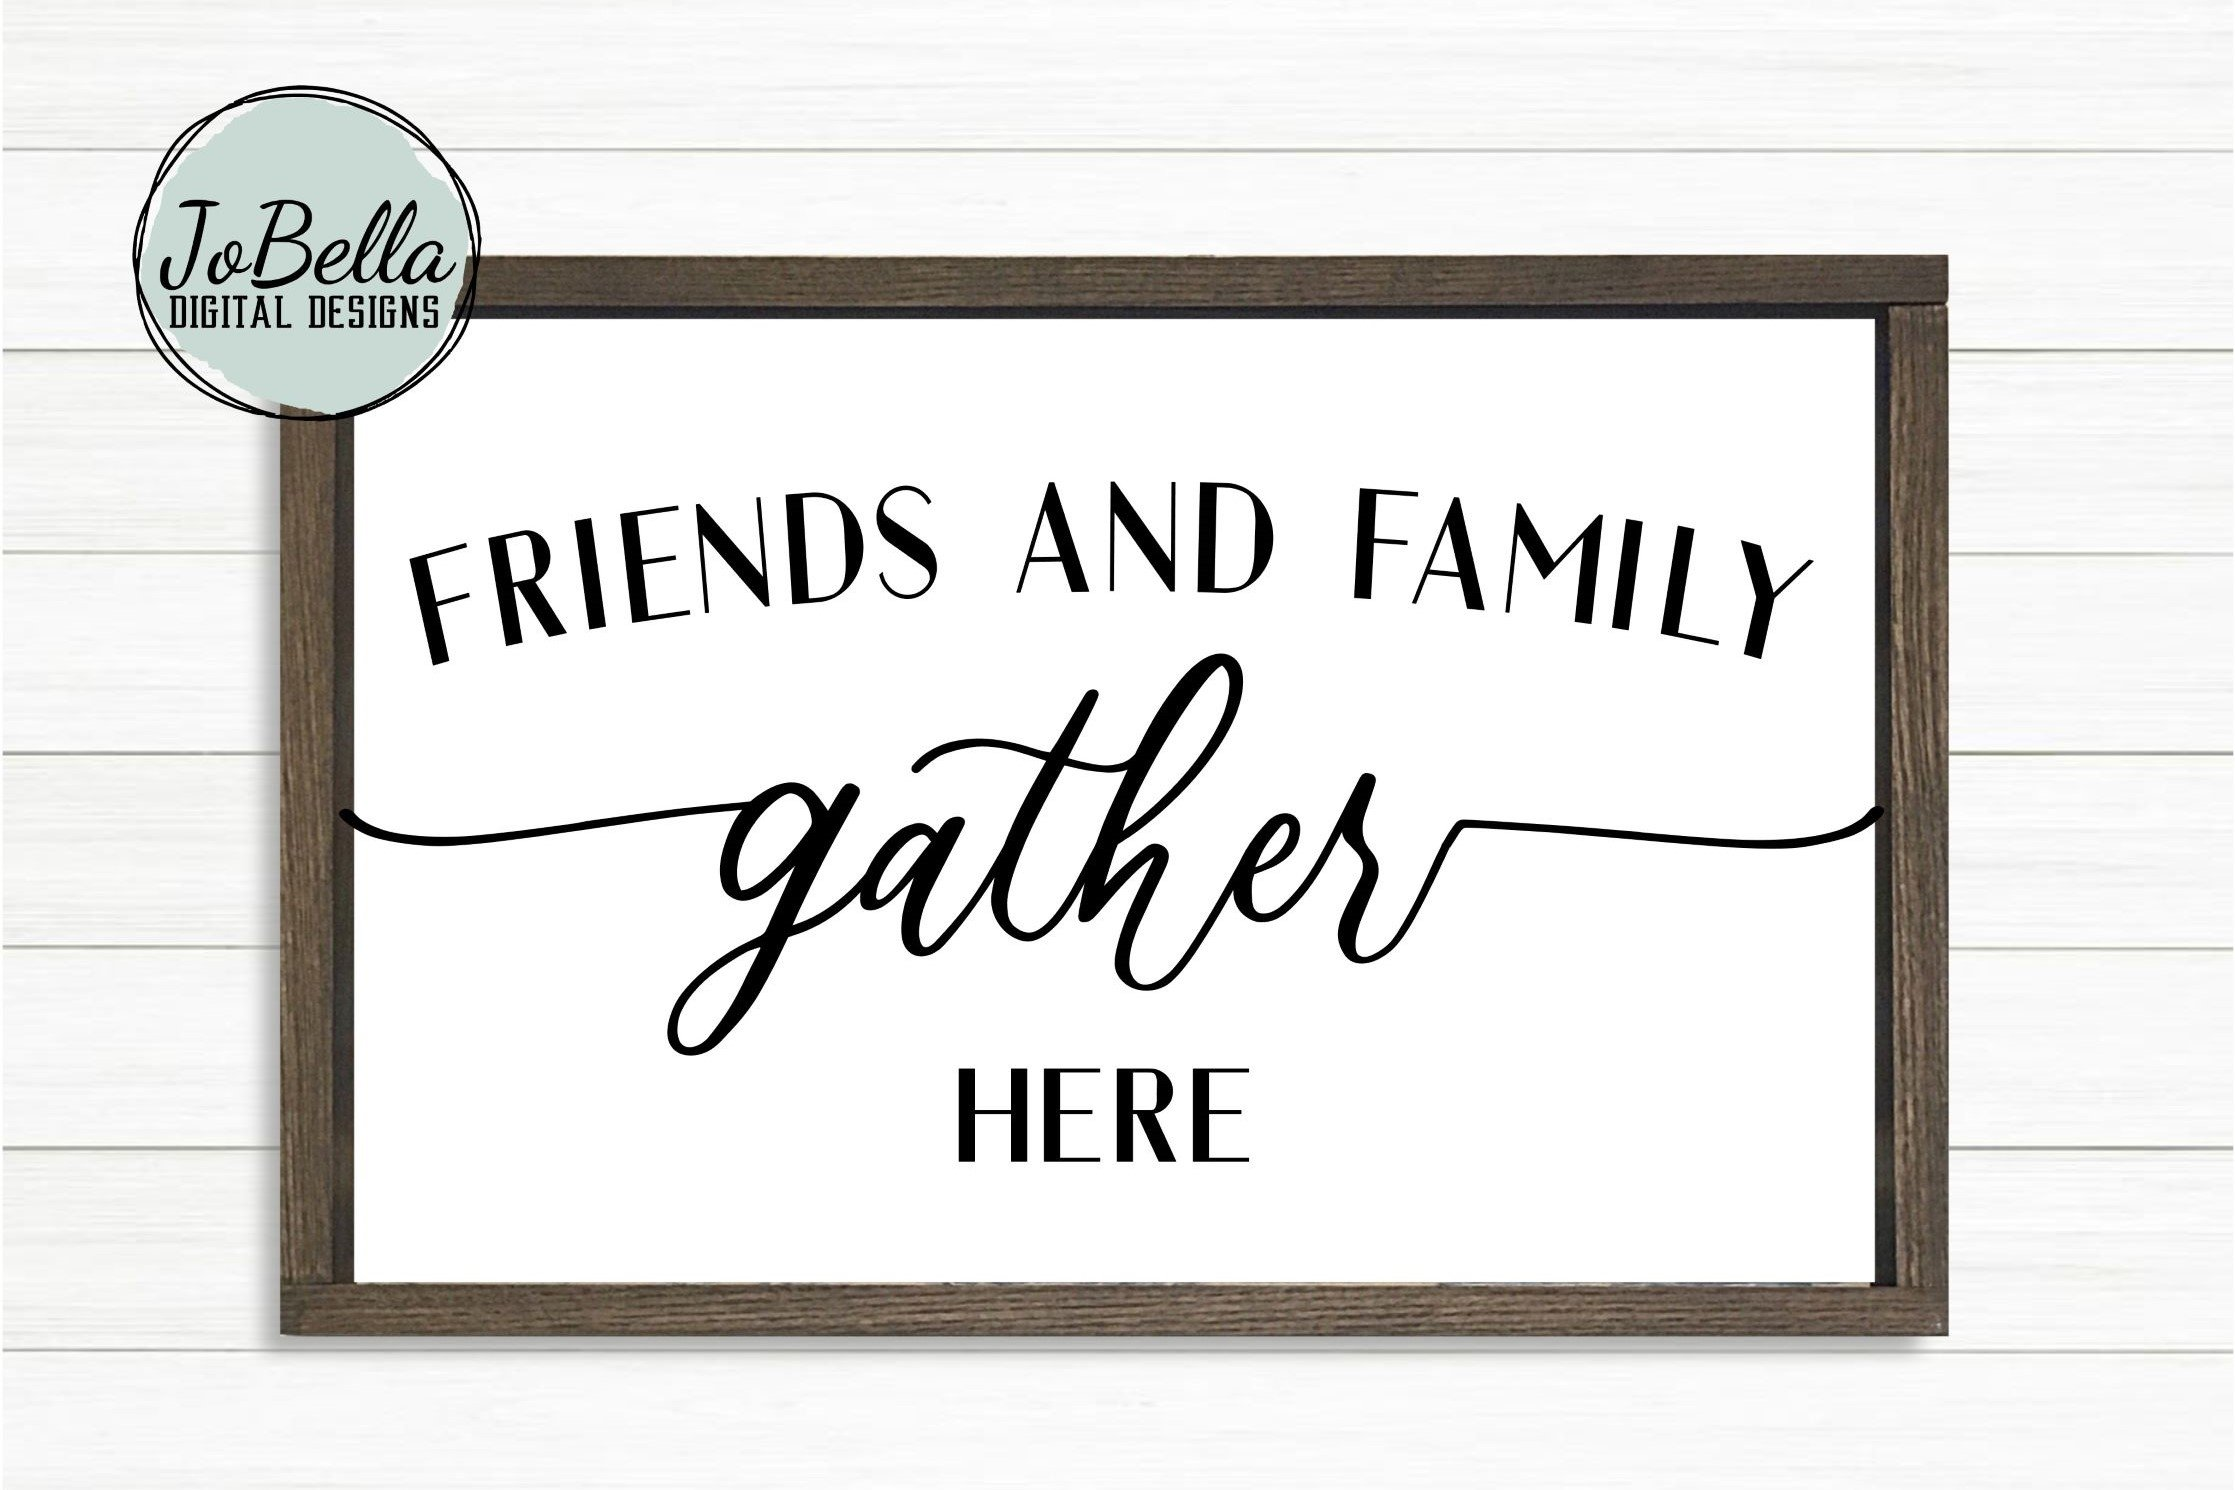 front door design Commercial Use Digital Design Friends gather here SVG for Cutting Machines 3 vertical files for long porch sign